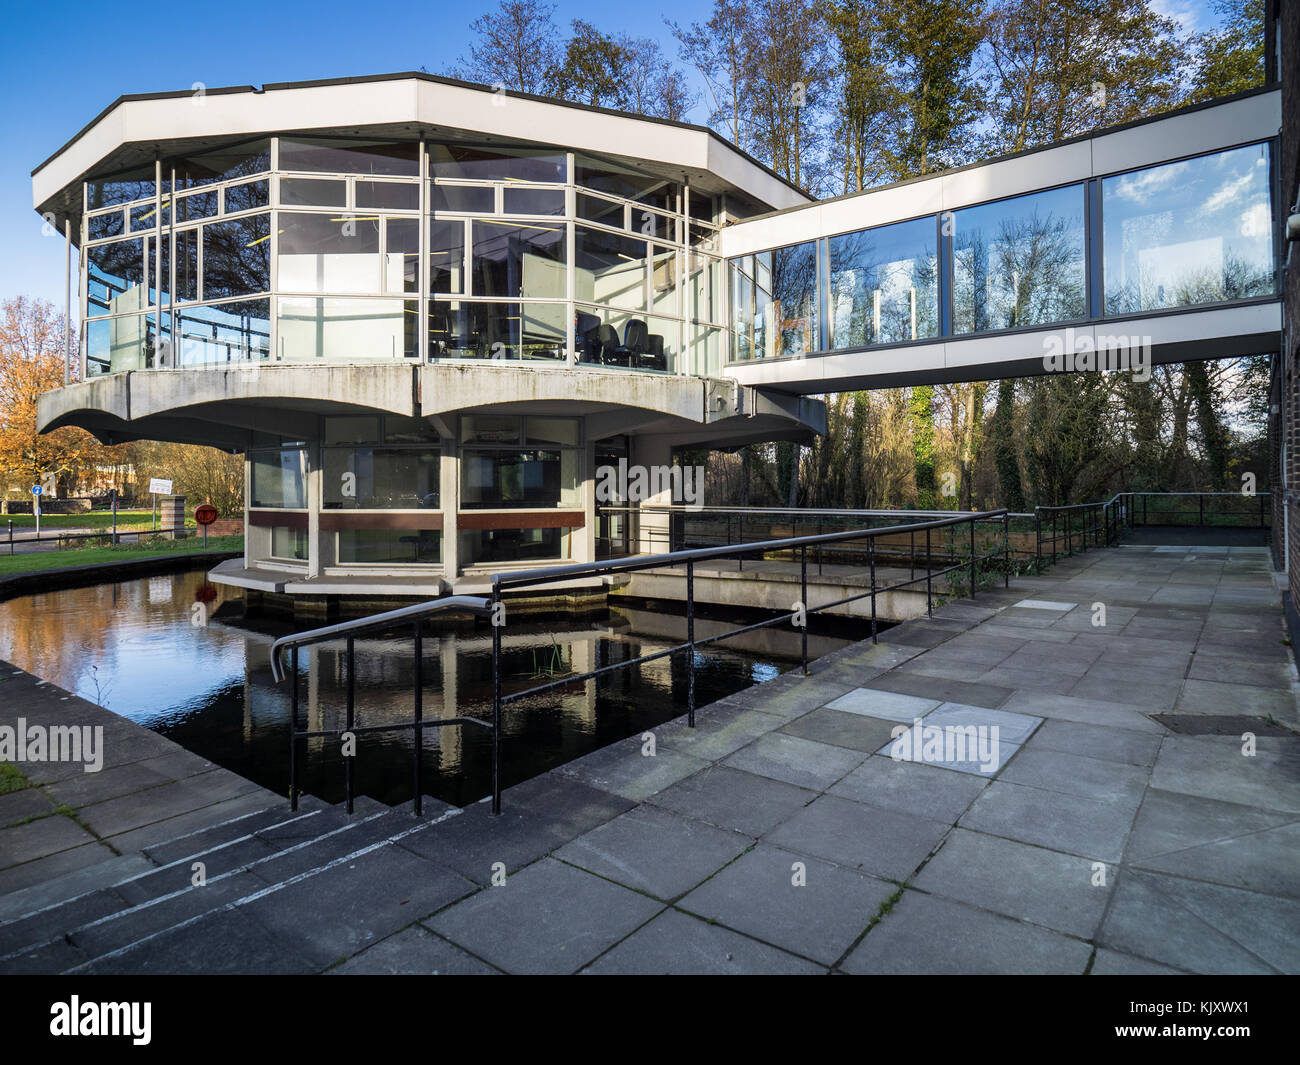 The Rotunda, Winchester School of Art, part of the University of Southampton, in Winchester UK. Opened in 1965, - Stock Image